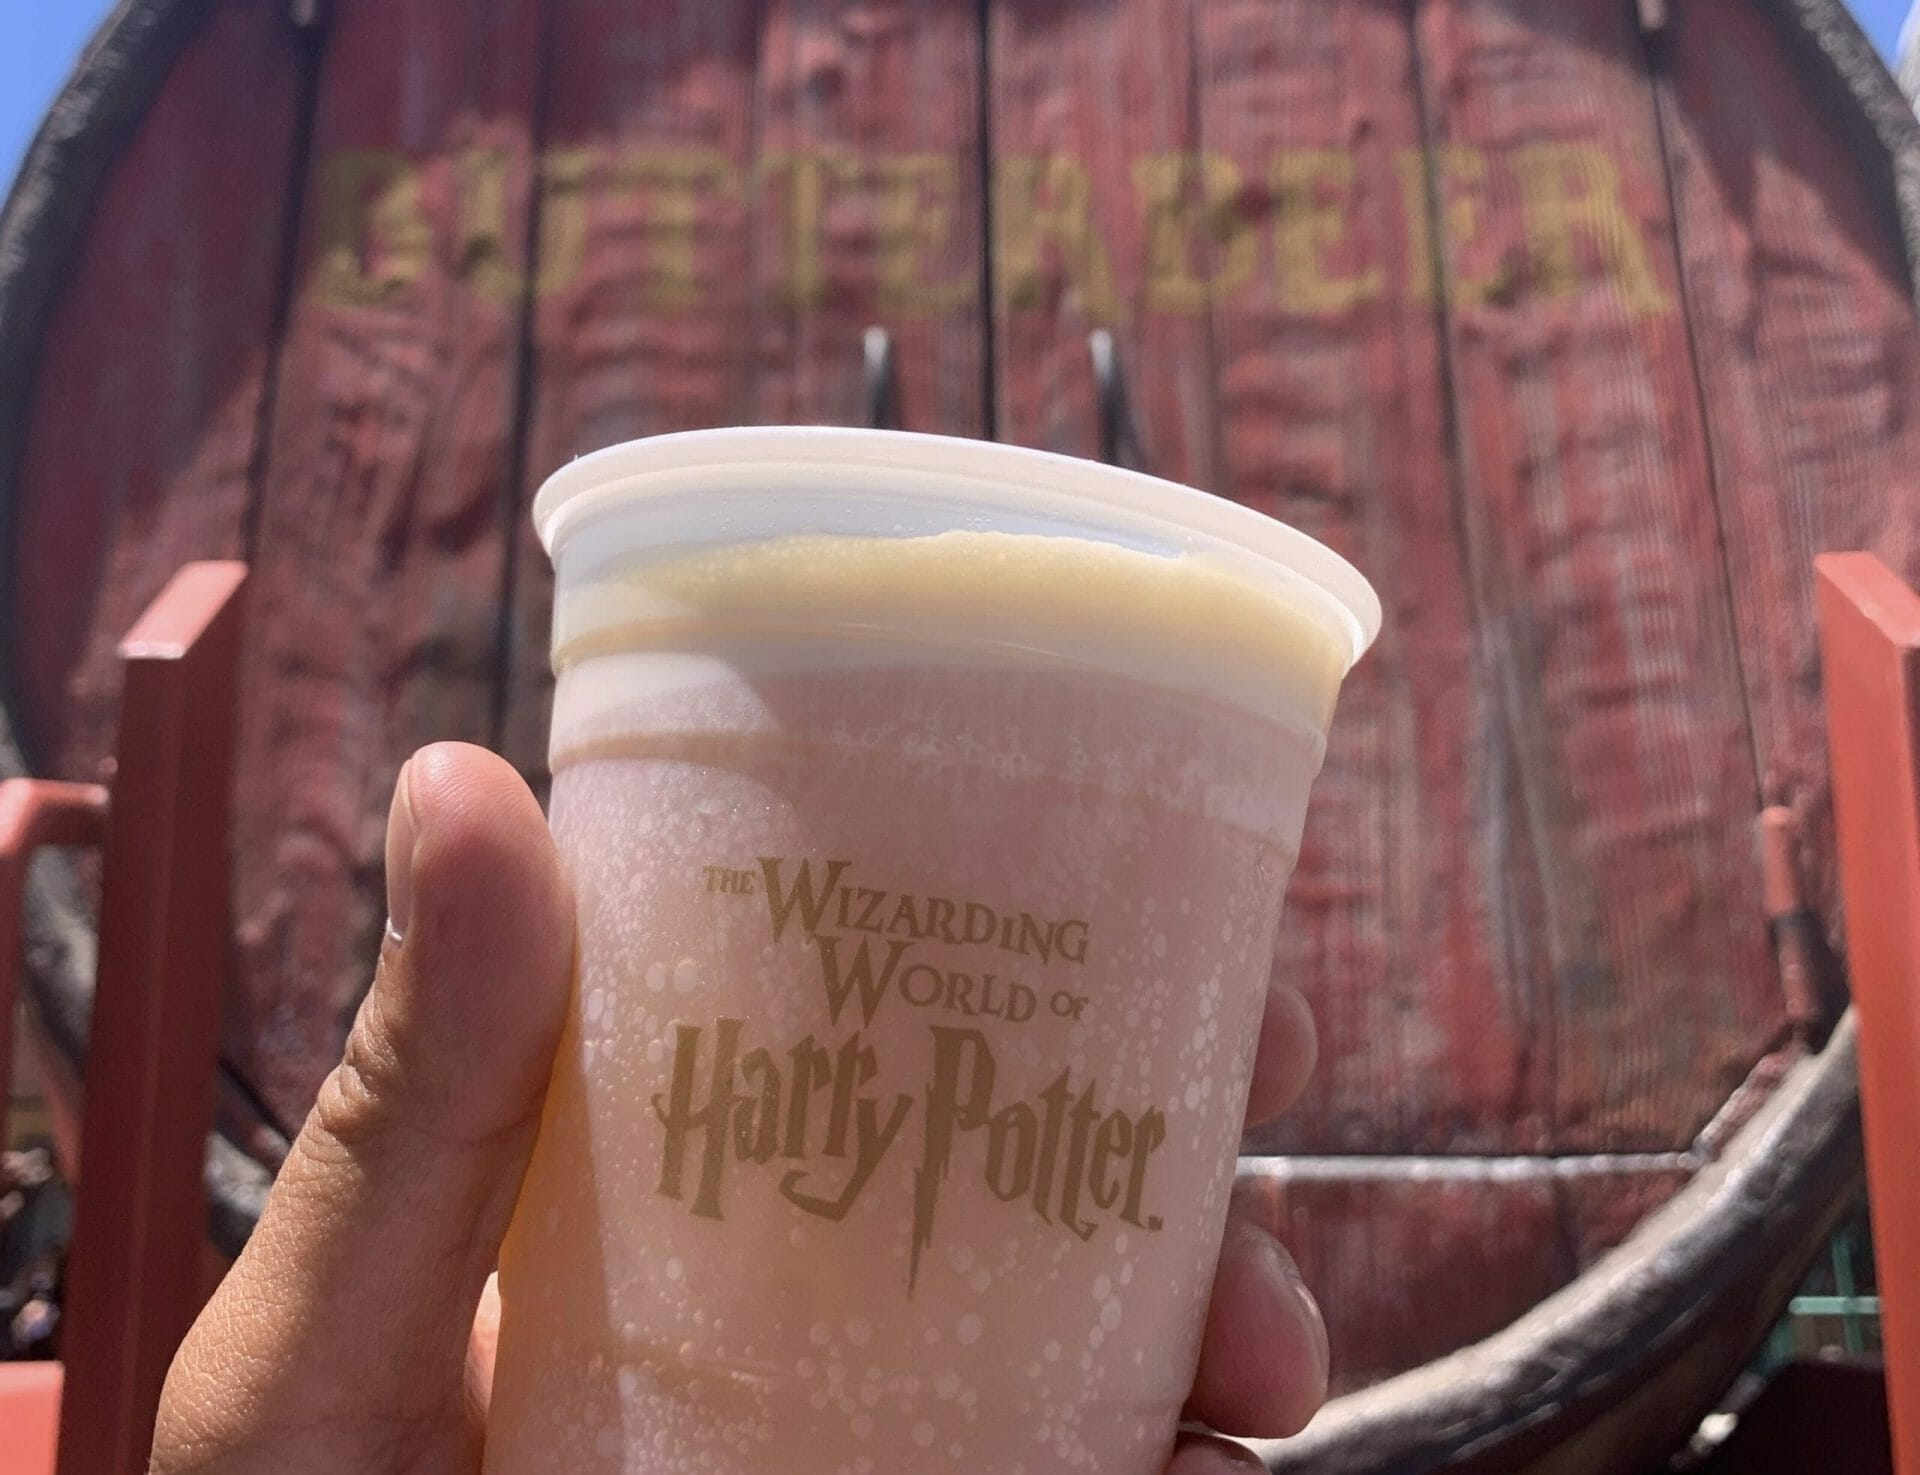 How Many Kinds of Butterbeer Are There?